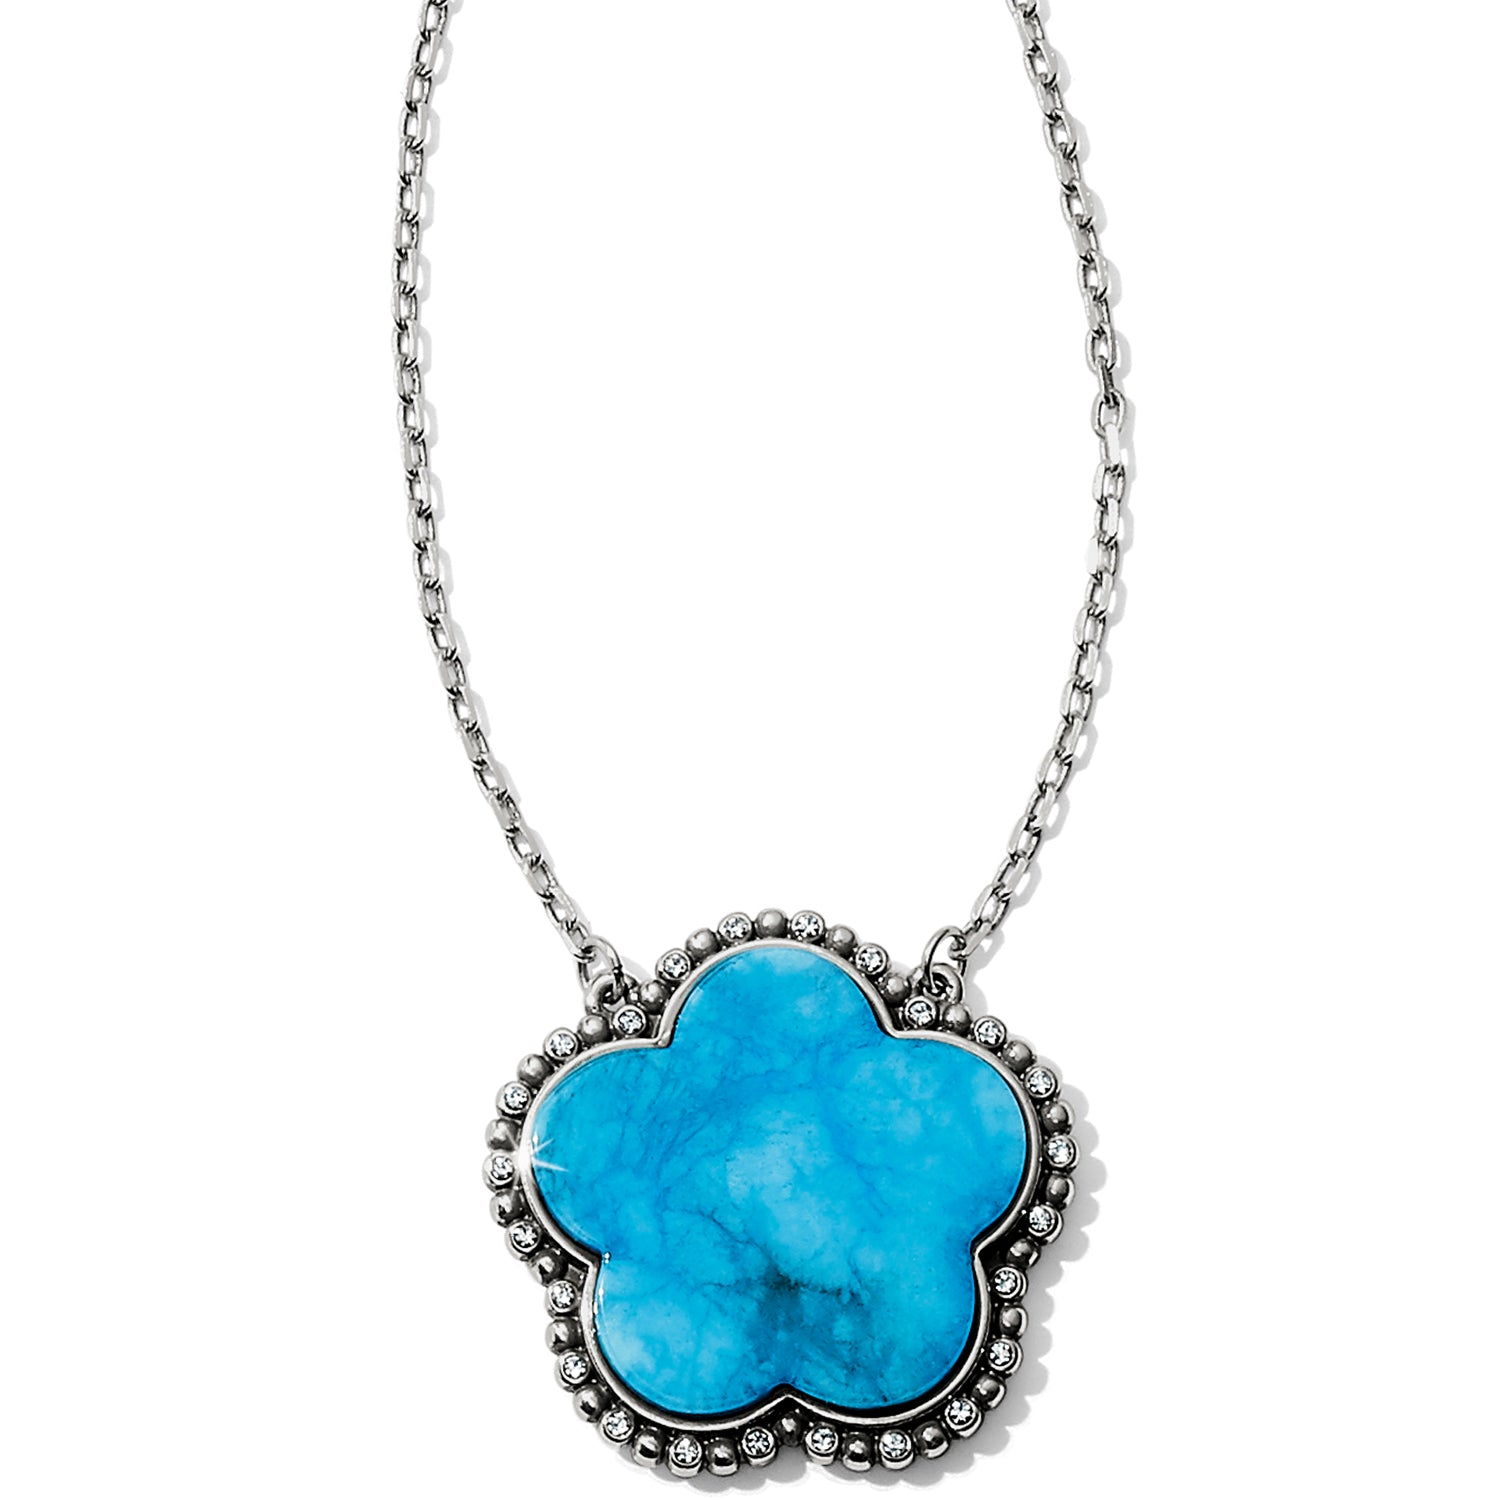 "Turquoise-hued quartz is showcased in this stylized flower, with its natural markings adding to its unique beauty.  Closure: Lobster Claw Length: 18"" - 22"" Adjustable Pendant Drop: 1"" Finish: Silver plated Stones: Turquoise"